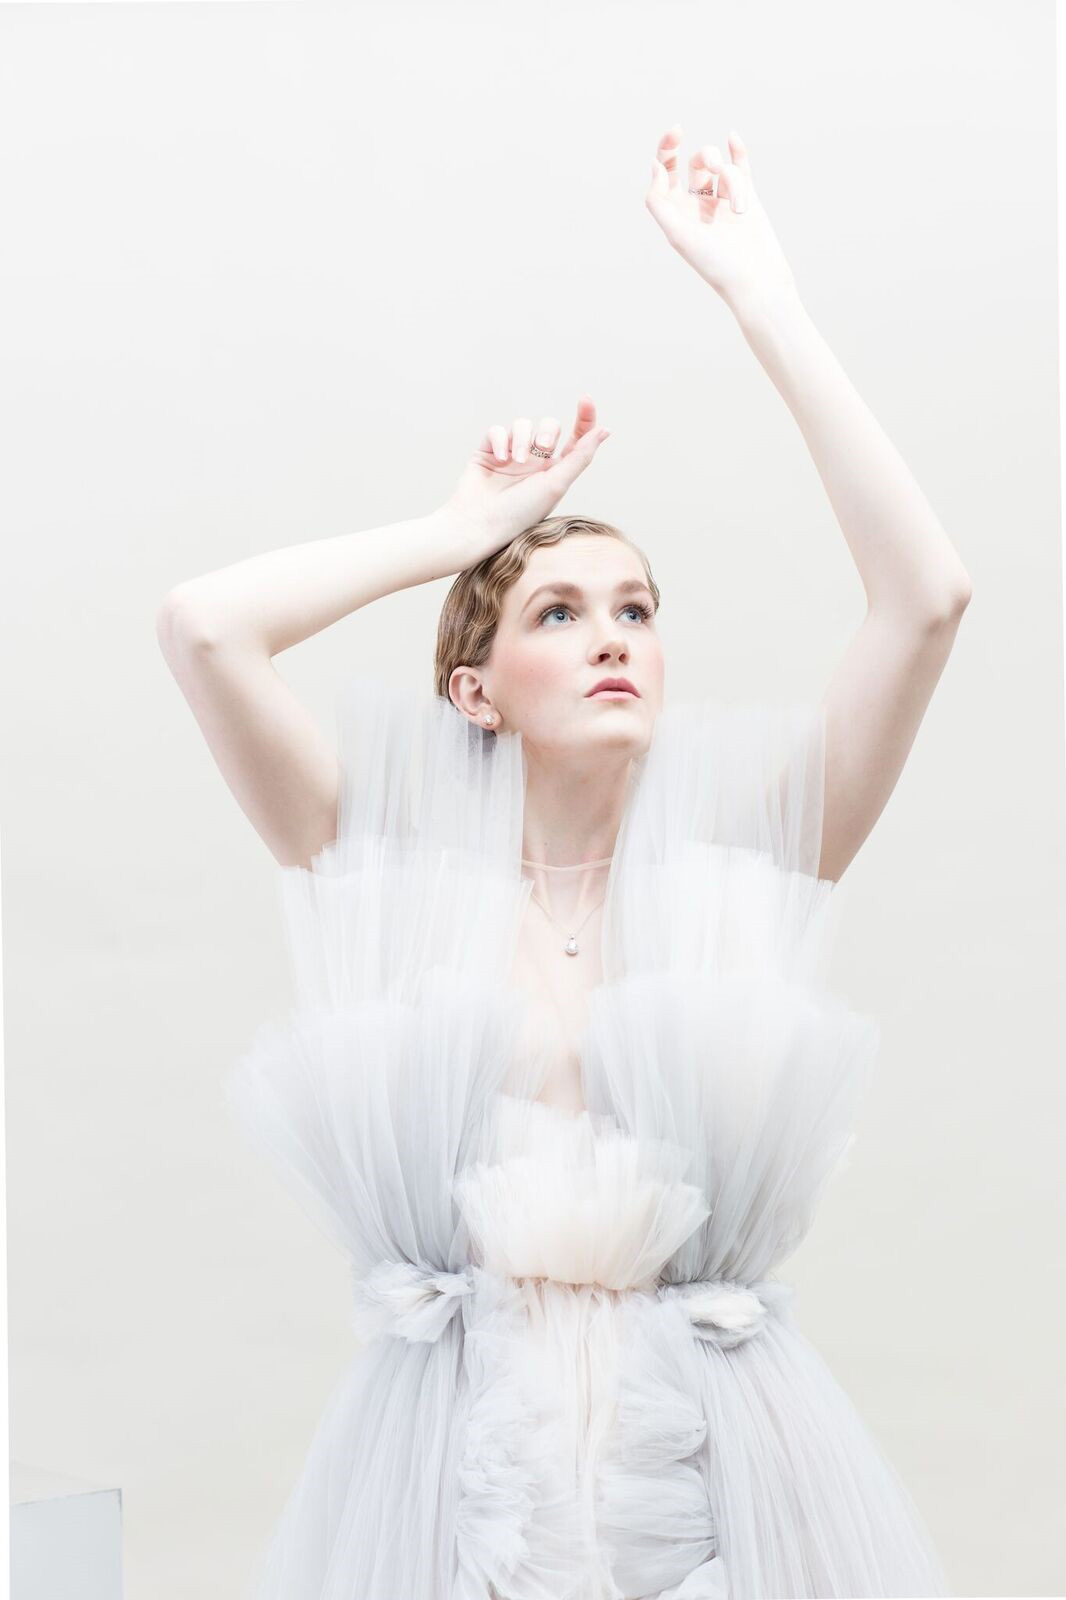 Fashion Design, Model in pastel tulle garment by Jennie Moon posing, looking up towards light with arms raised